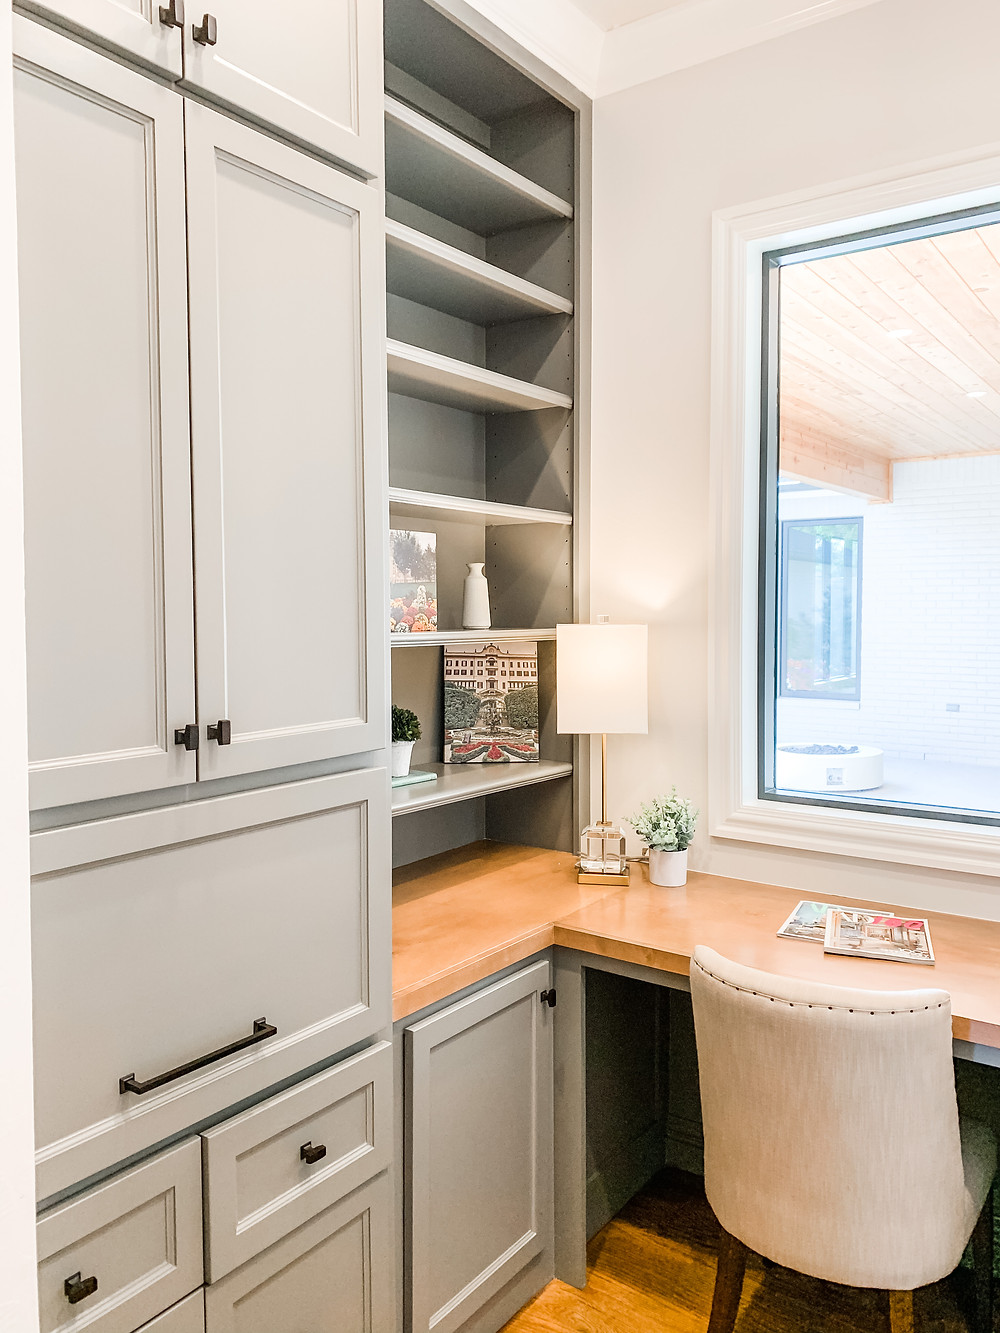 home office work from home space gray cabinets butcher block desk top home office storage built ins cabinets shelves